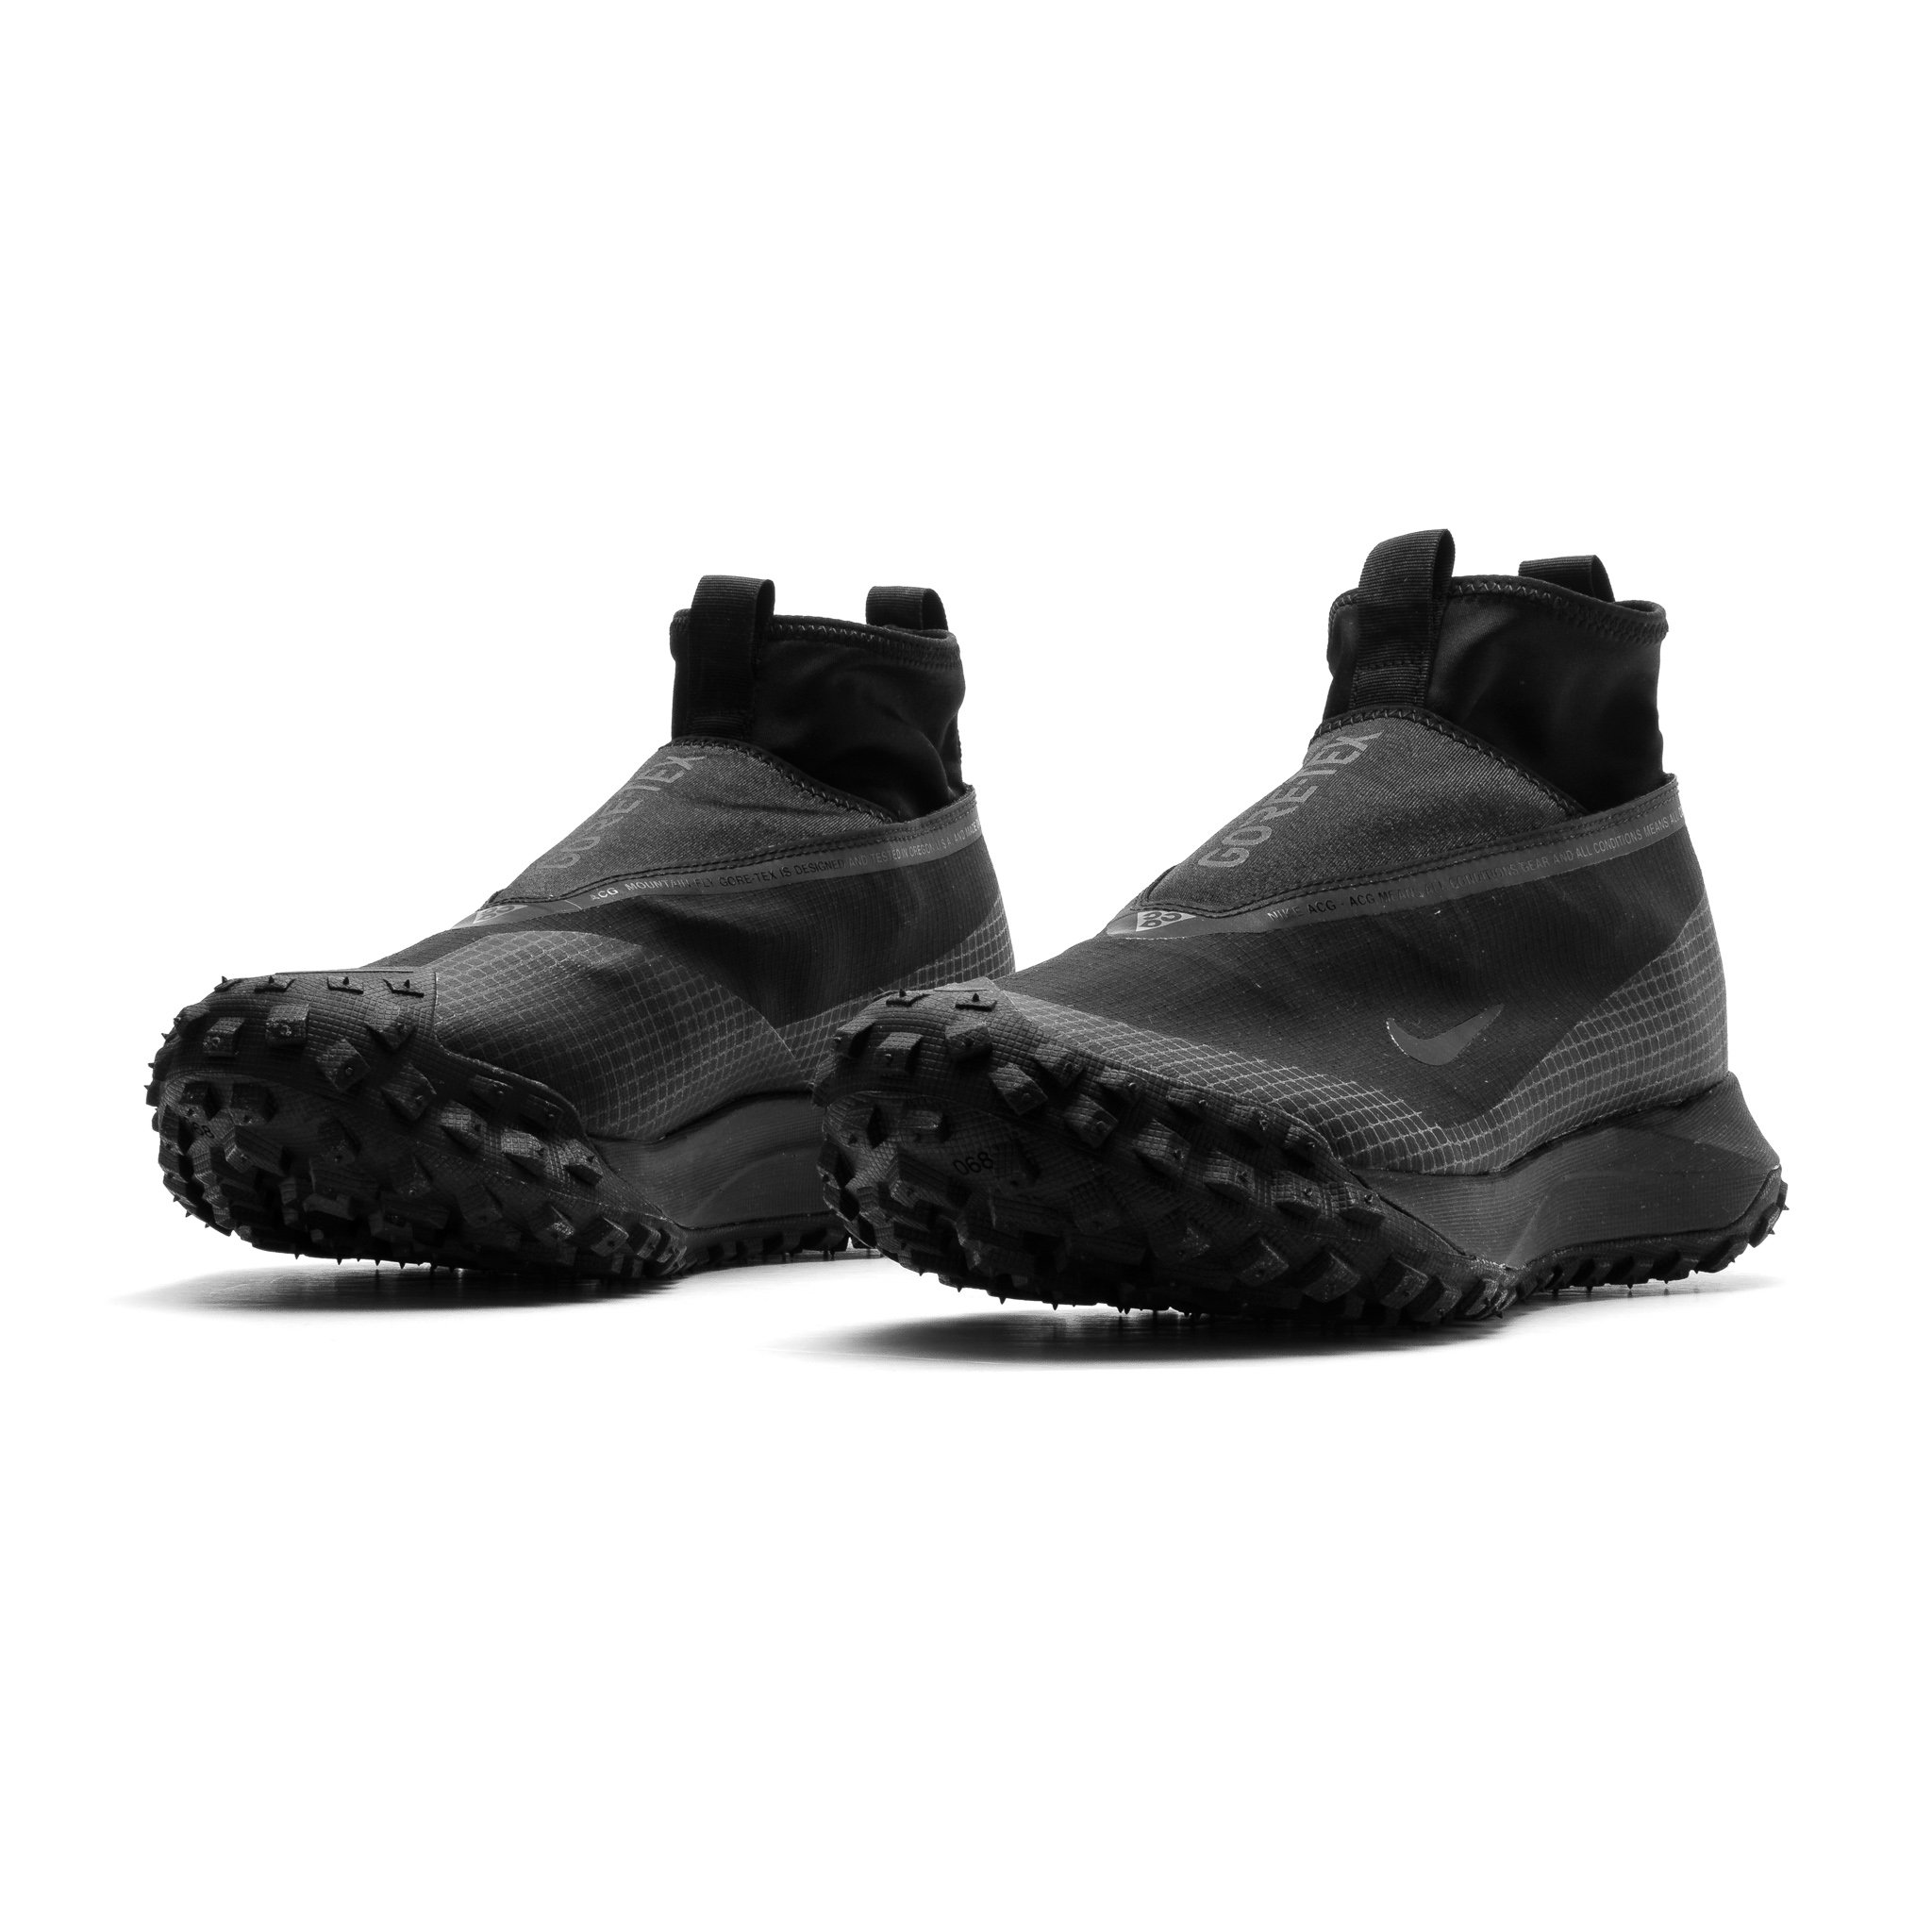 The ACG Mountain Fly Gore-Tex CT2904-002 sneakers are stylish, comfortable, and durable.